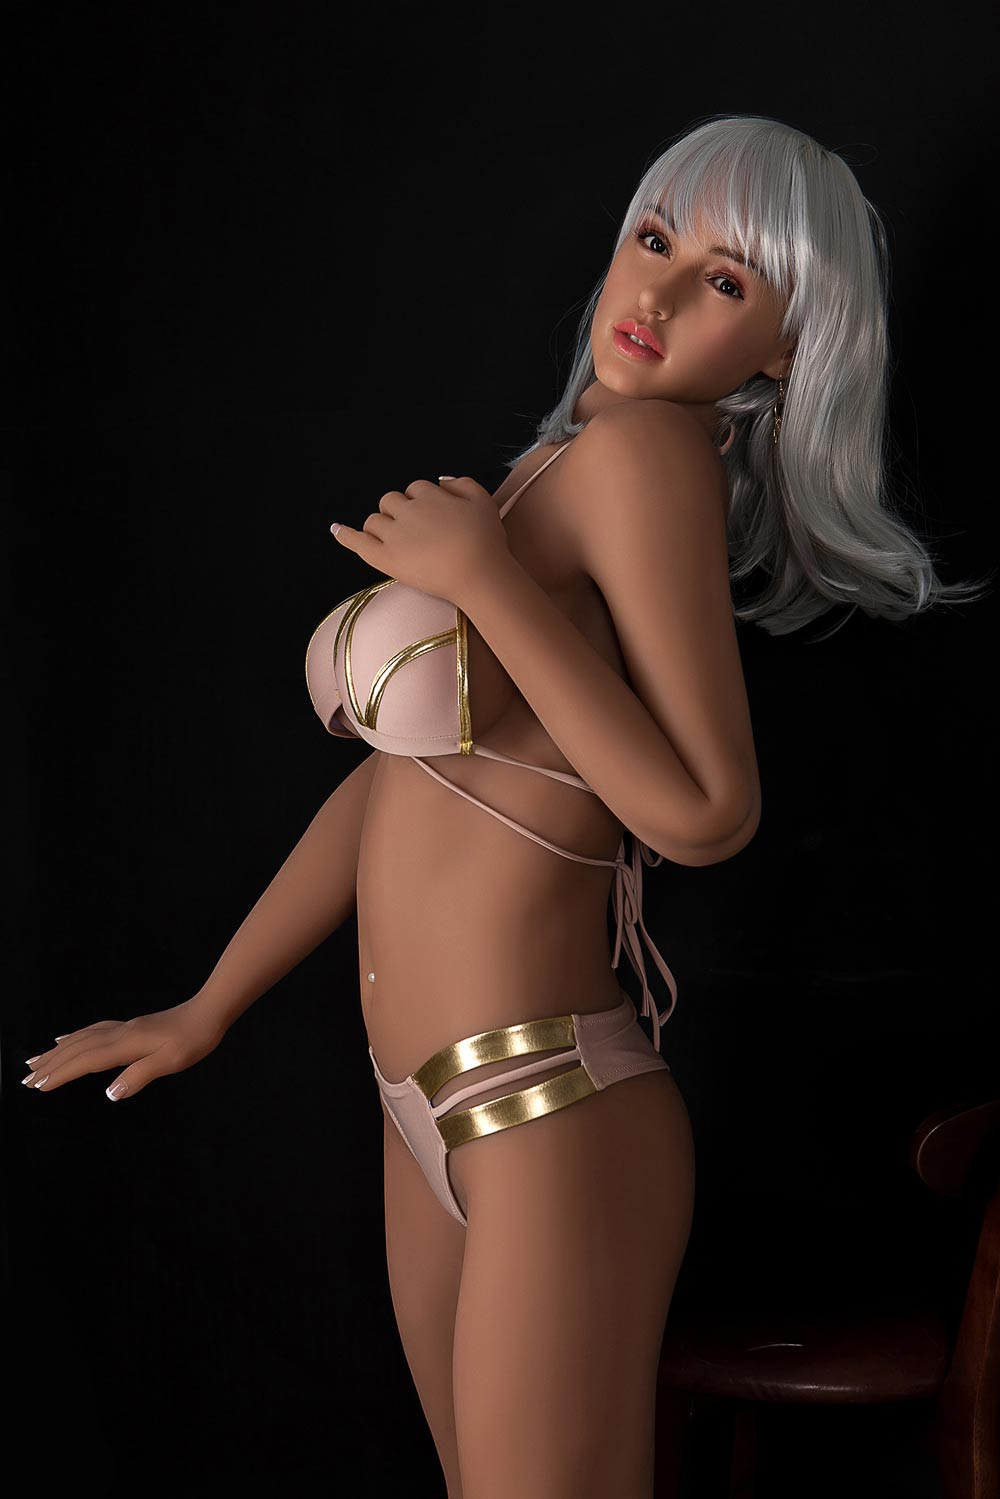 Silicone sex doll with hands on chest